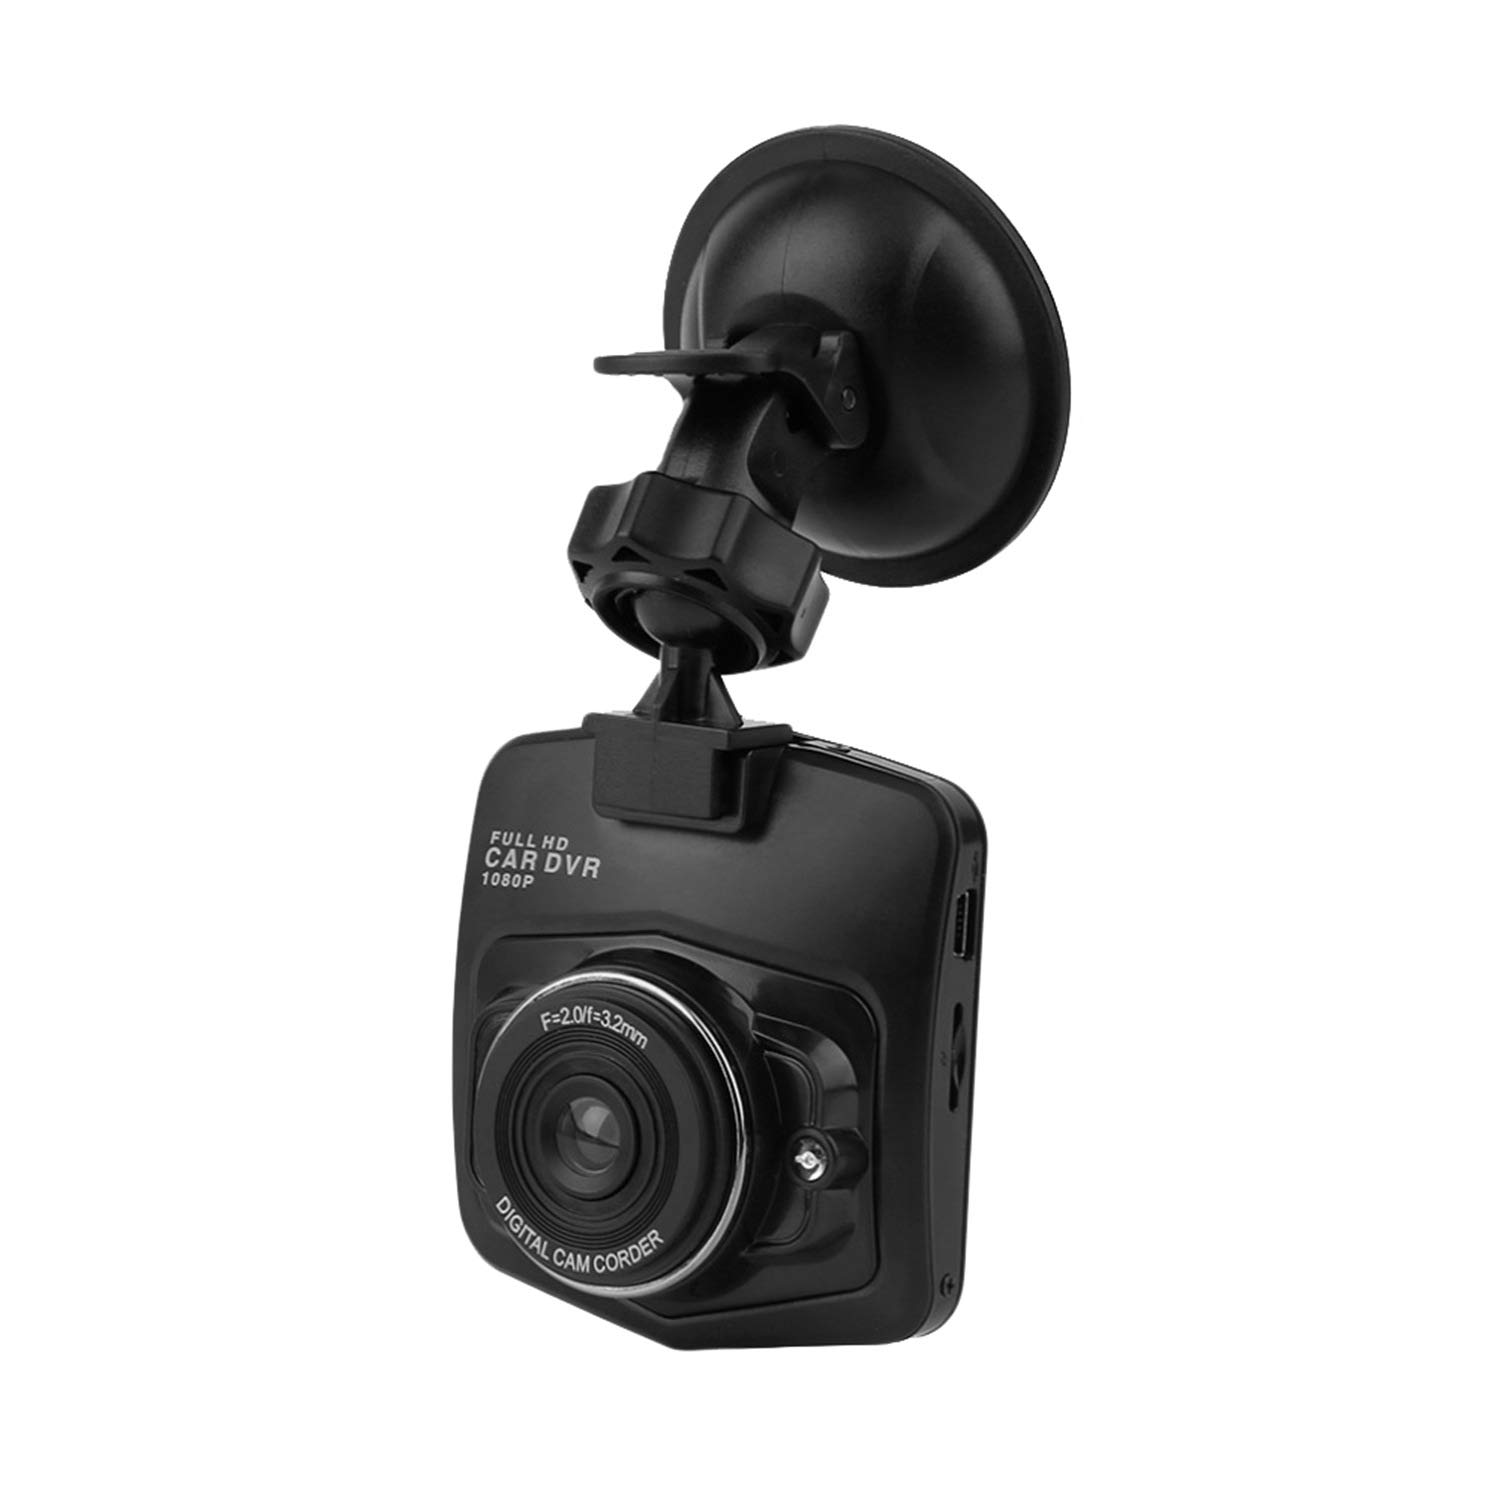 M001 2.4 inch LCD Dash Cam HD 1280 x 720 / 1080p Car DVR 120 Degree Wide Angle with Night Vision/G-Sensor/Motion / WDR WAZA